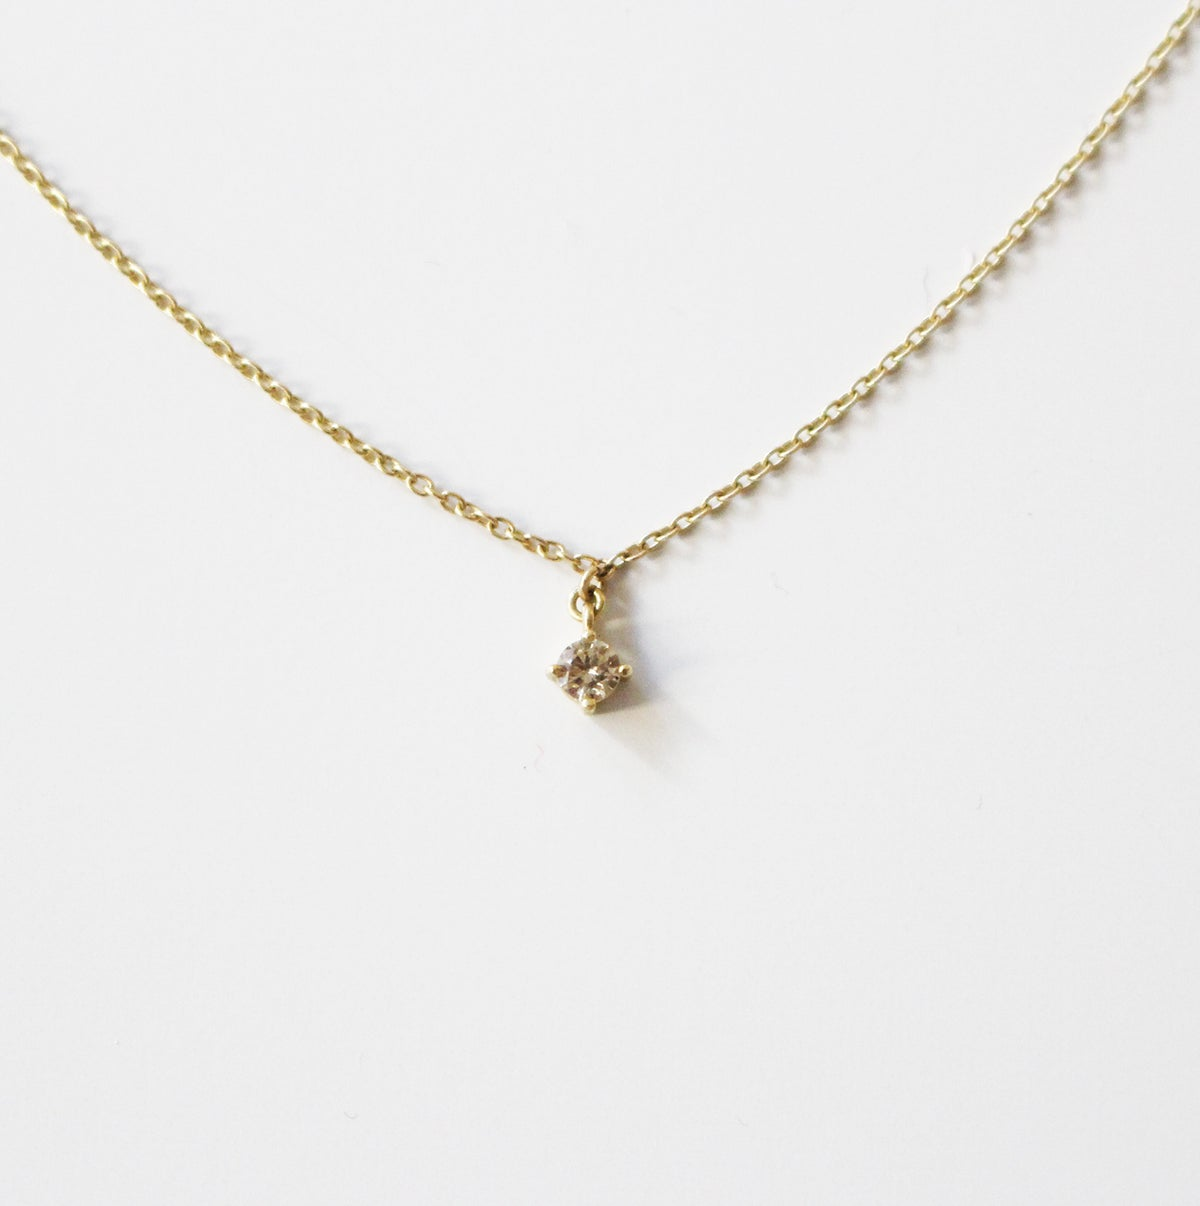 Image of solitaire diamond choker necklace